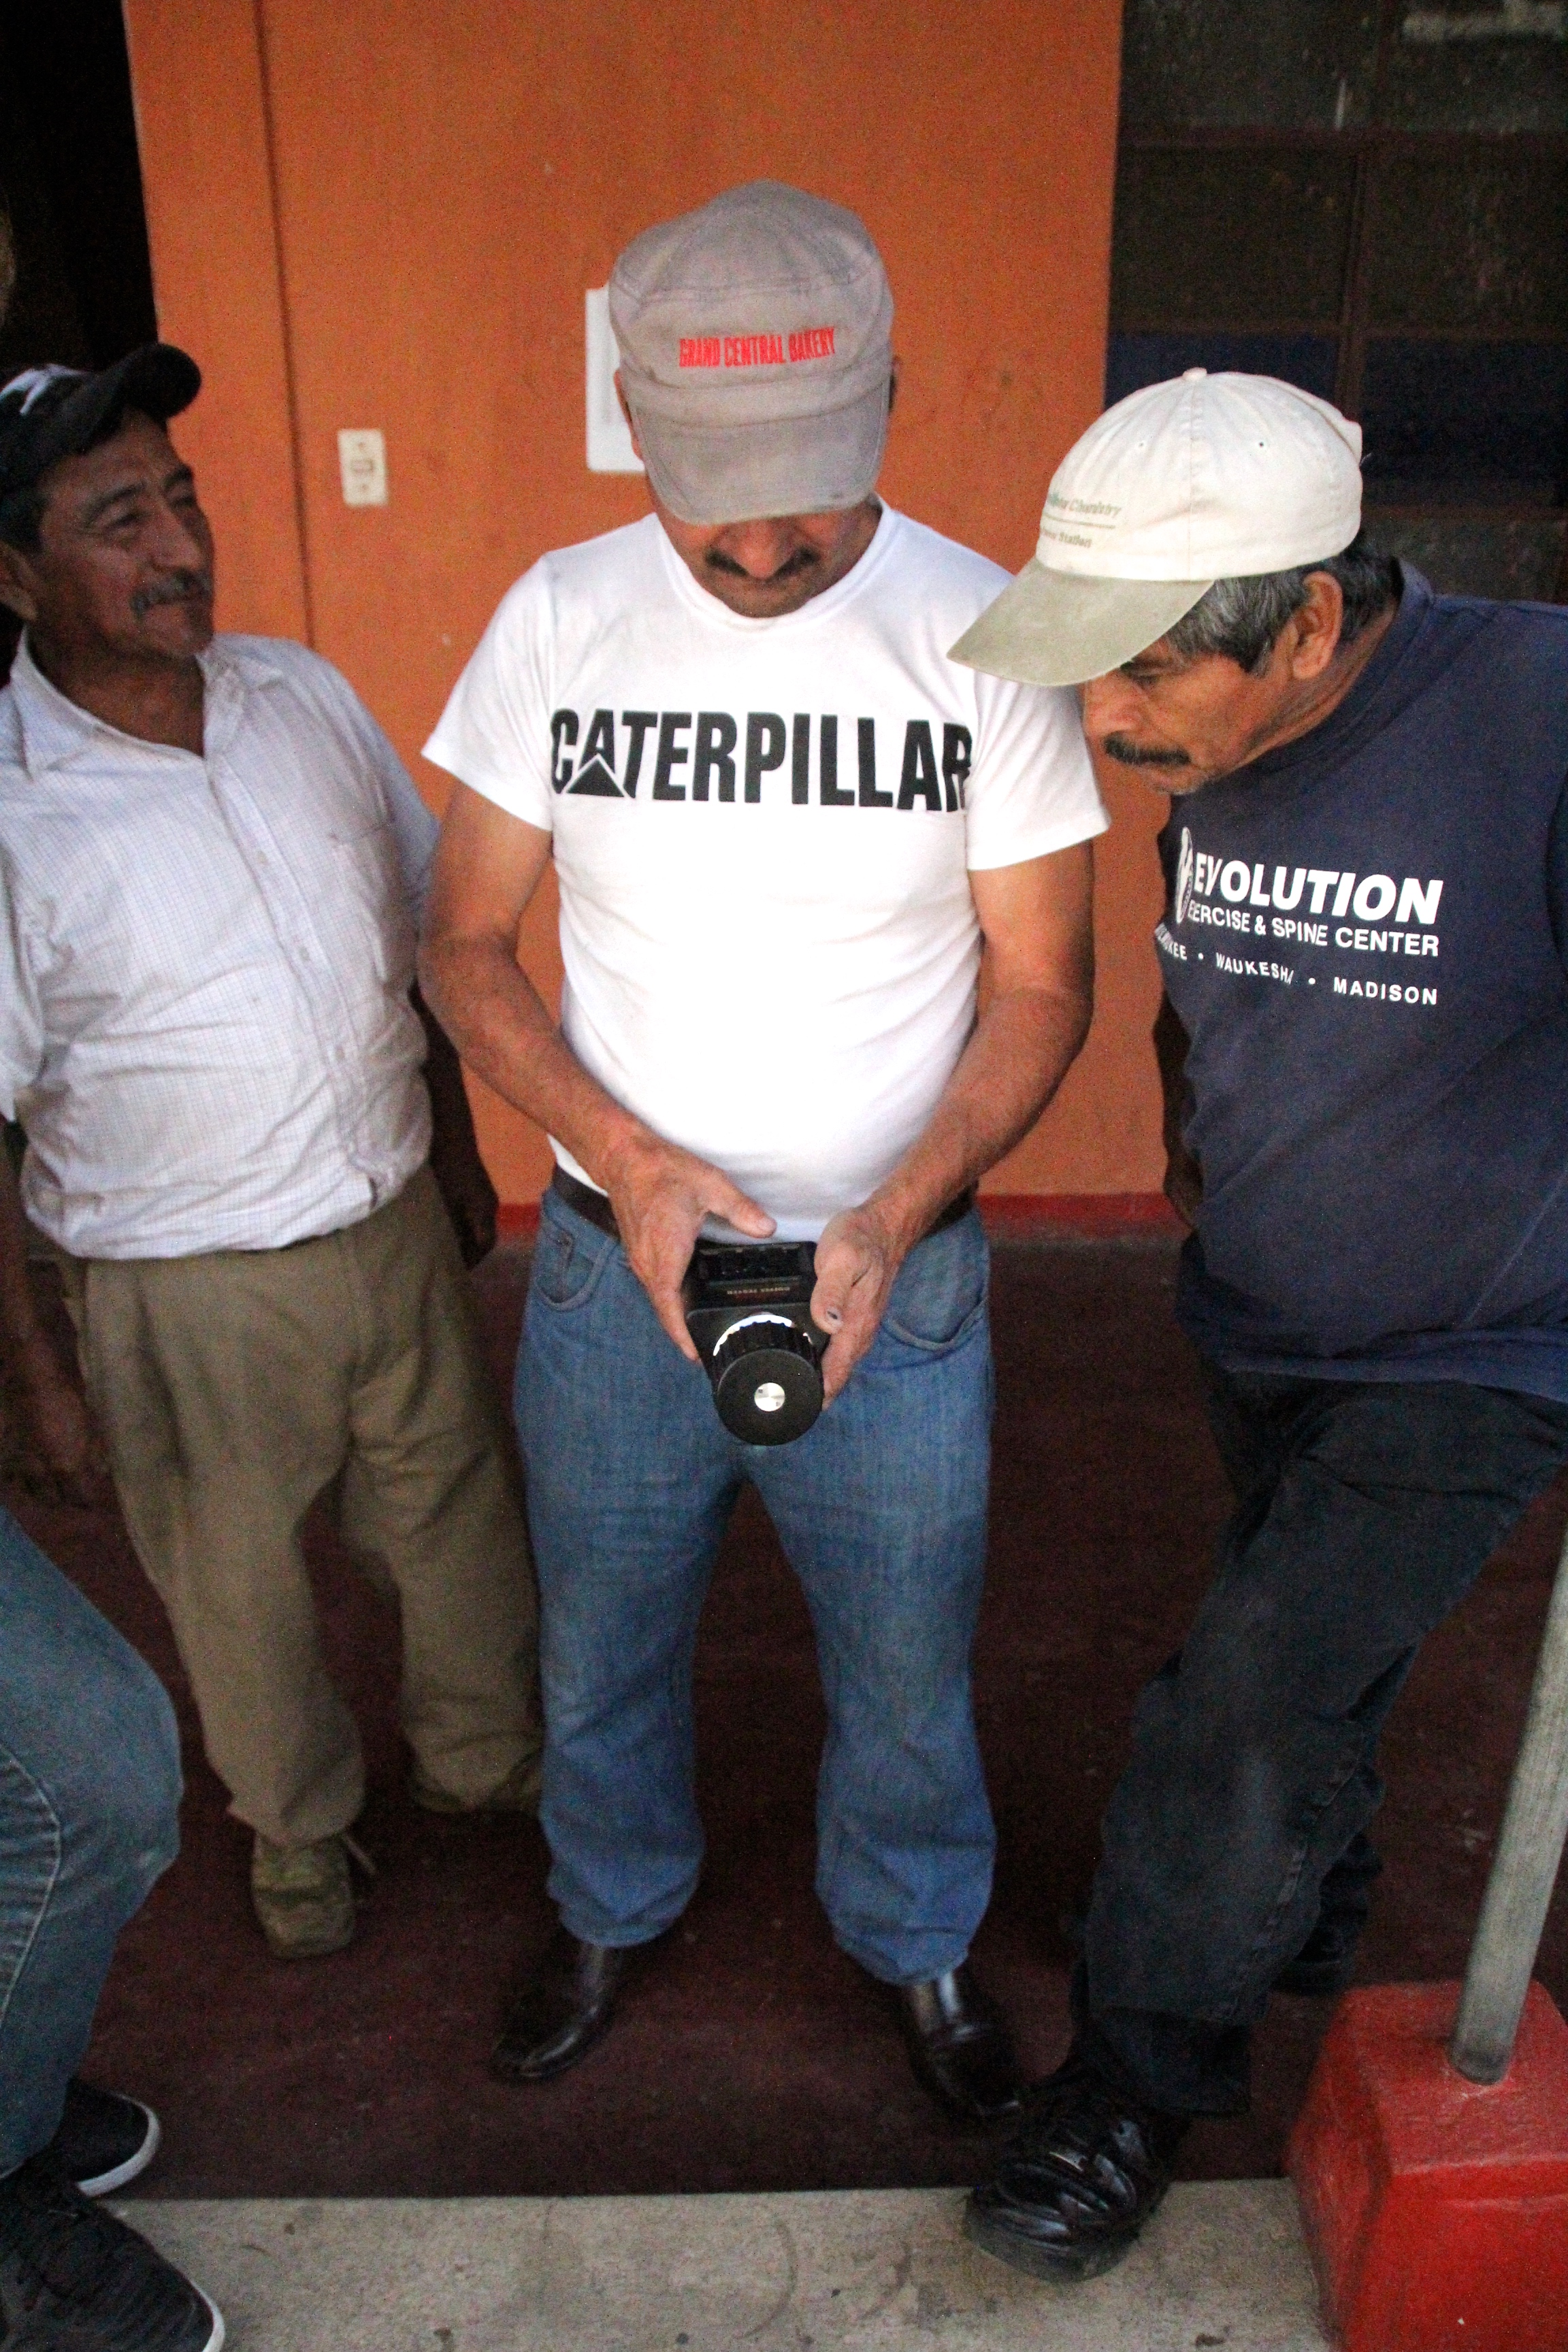 Timoteo, Rigo, & Mincho using a humidity meter to test moisture levels in coffee.